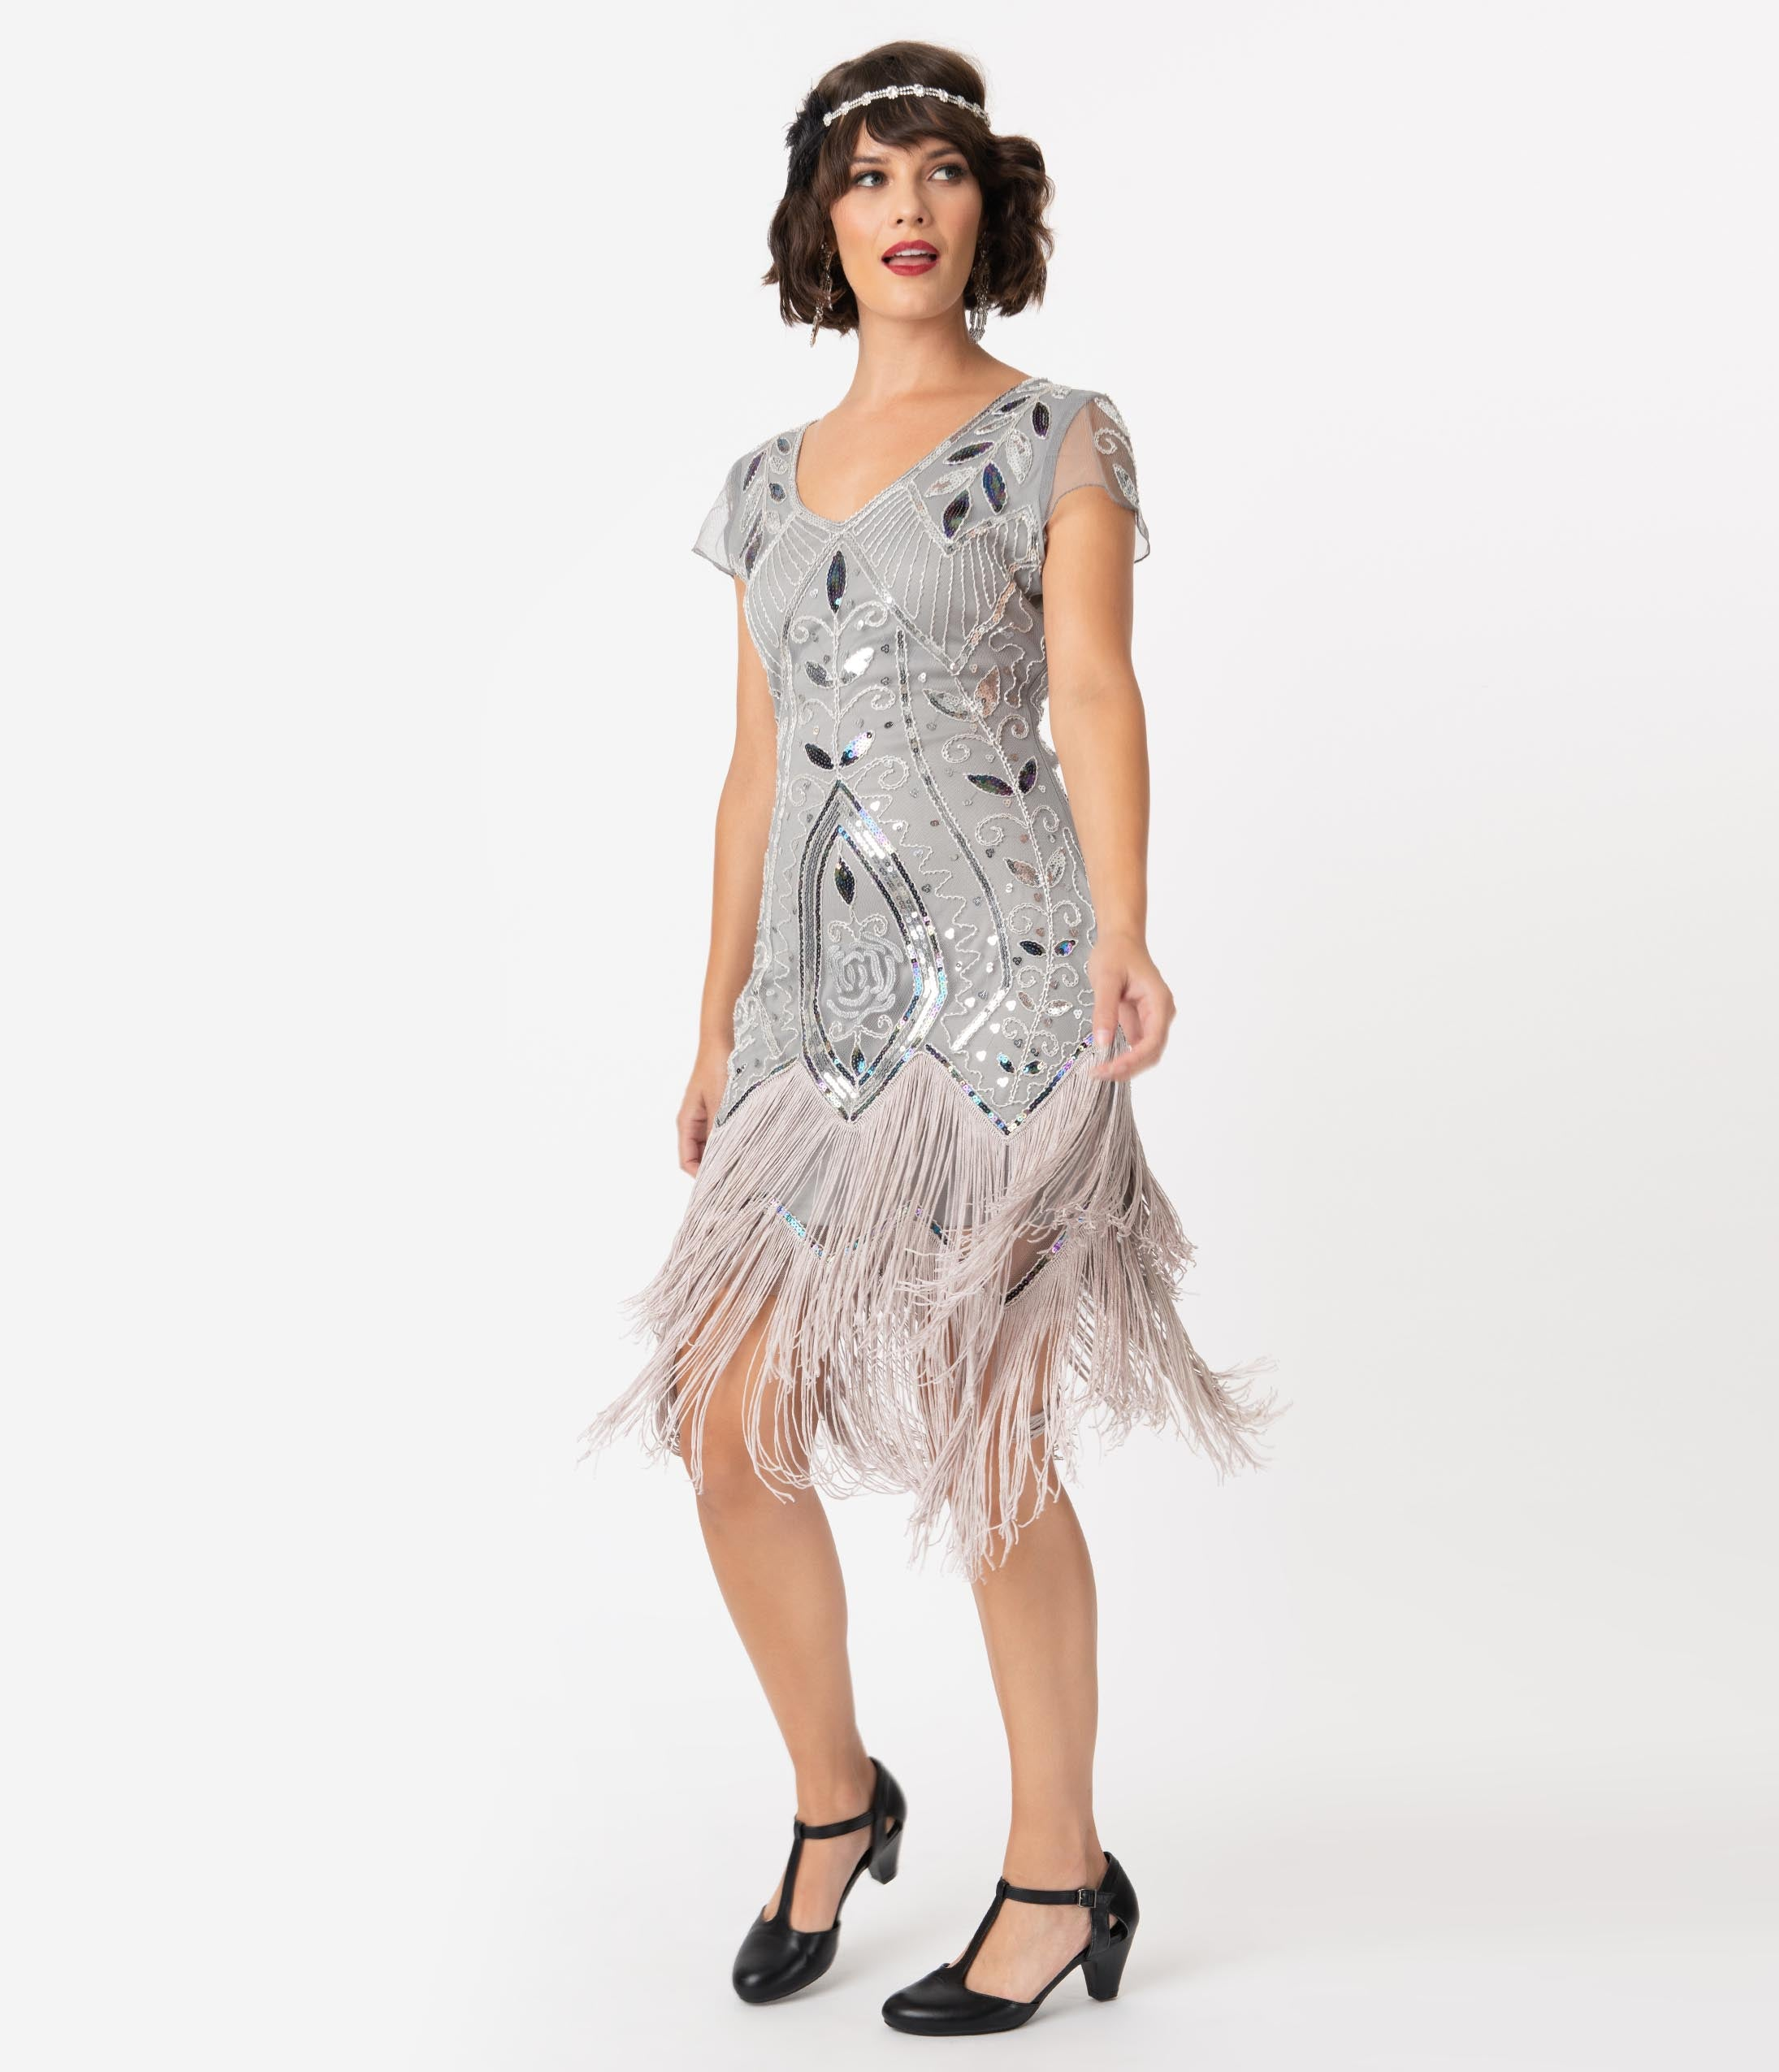 Charleston Dress: Fringe Flapper Dress Unique Vintage 1920S Silver Beaded Noele Fringe Flapper Dress $98.00 AT vintagedancer.com